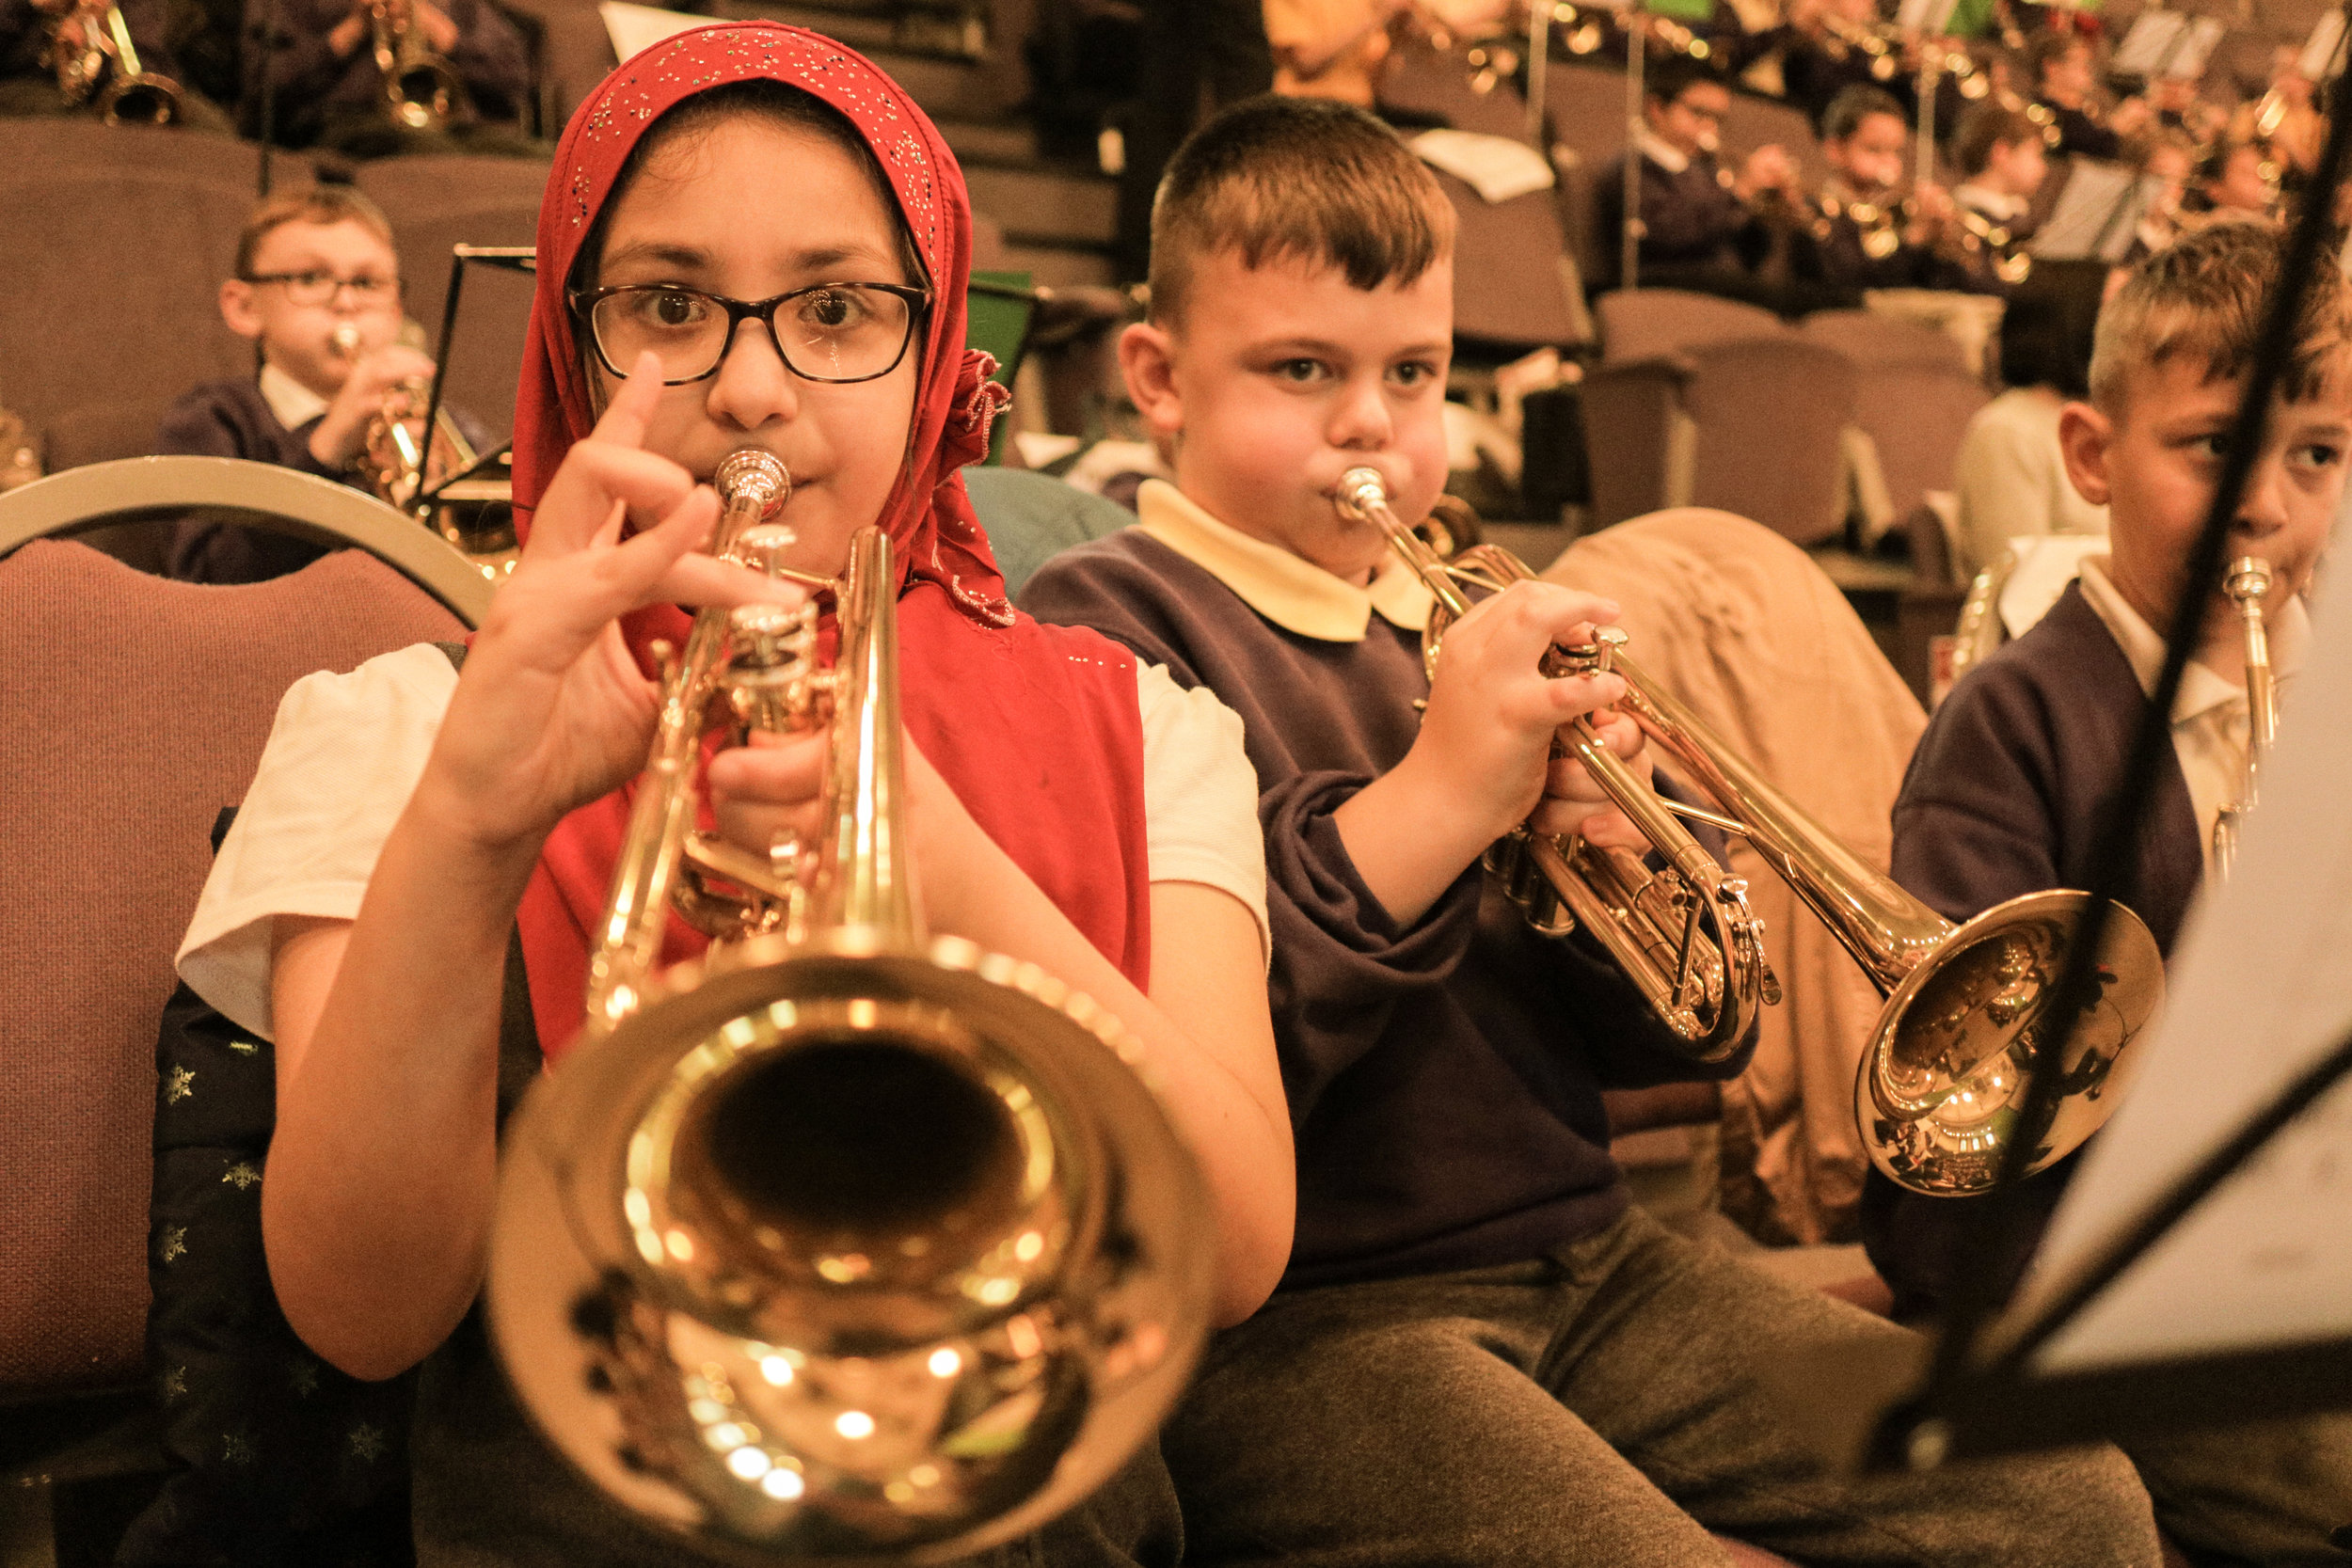 Young musicians, performing with the Chineke! orchestra at Central Hall in November 2017, as part of a partnership project with Turner Sims, Southampton.